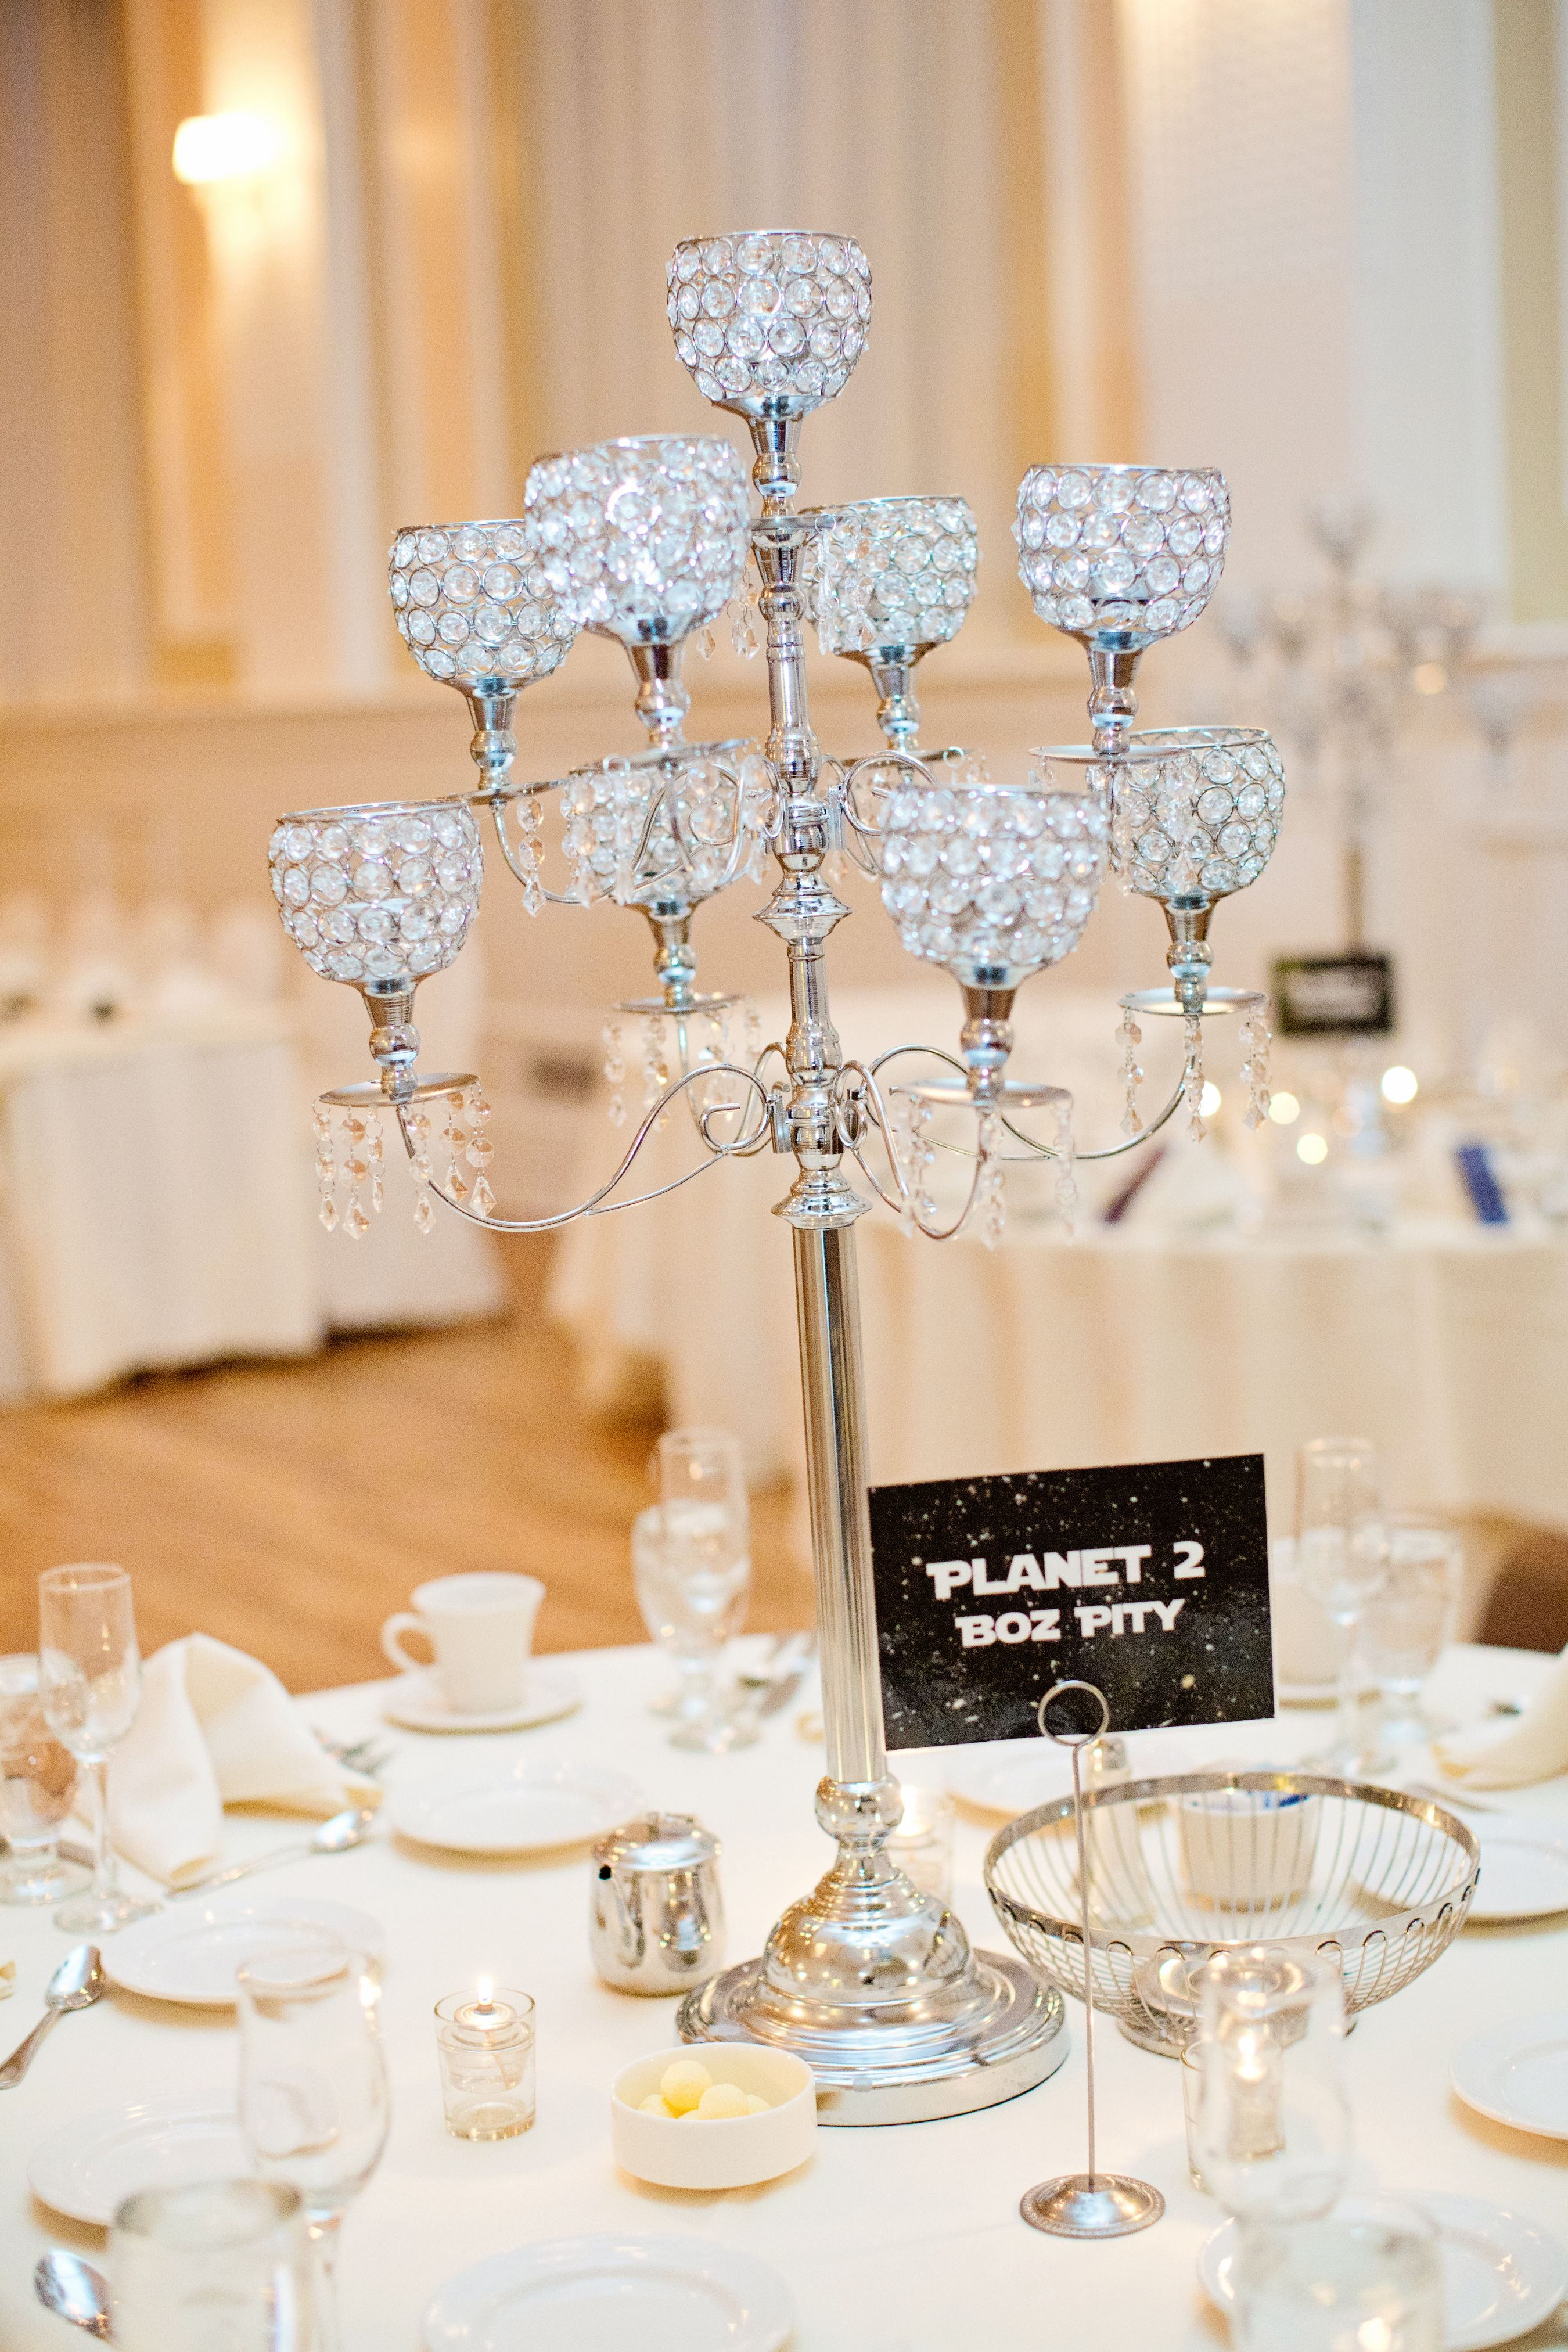 pinterest wedding table decorations candles%0A Candle Centerpieces and Star Wars Planet Table Names